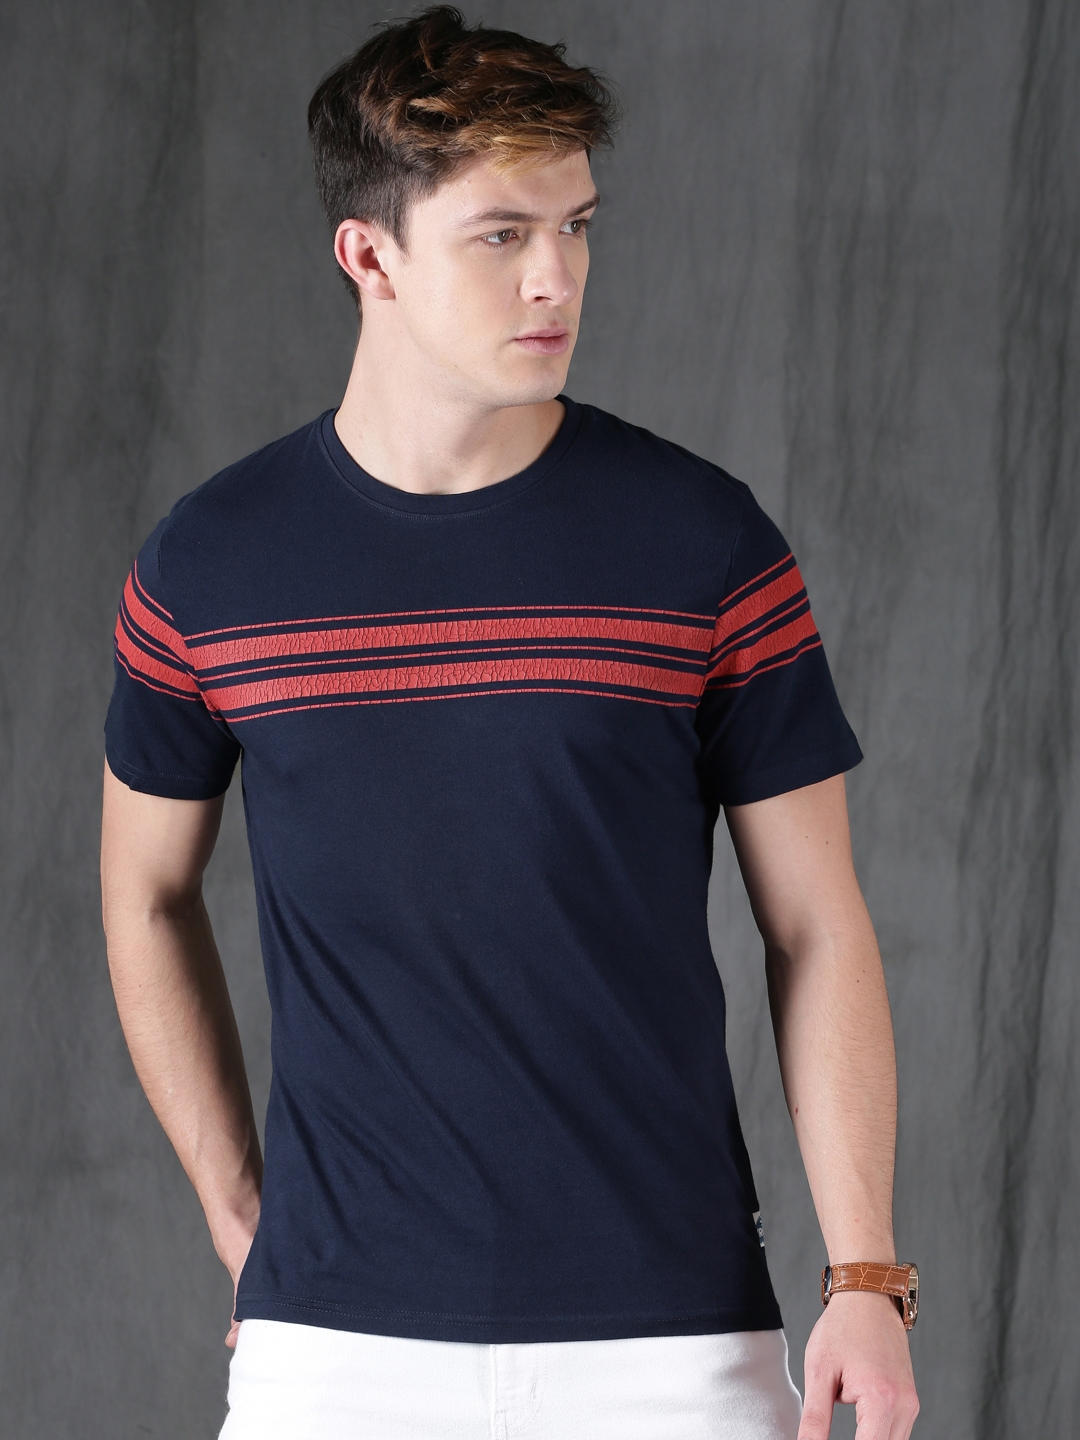 4112e45876ea Buy WROGN Men Navy Blue Striped Slim Fit Round Neck T Shirt ...